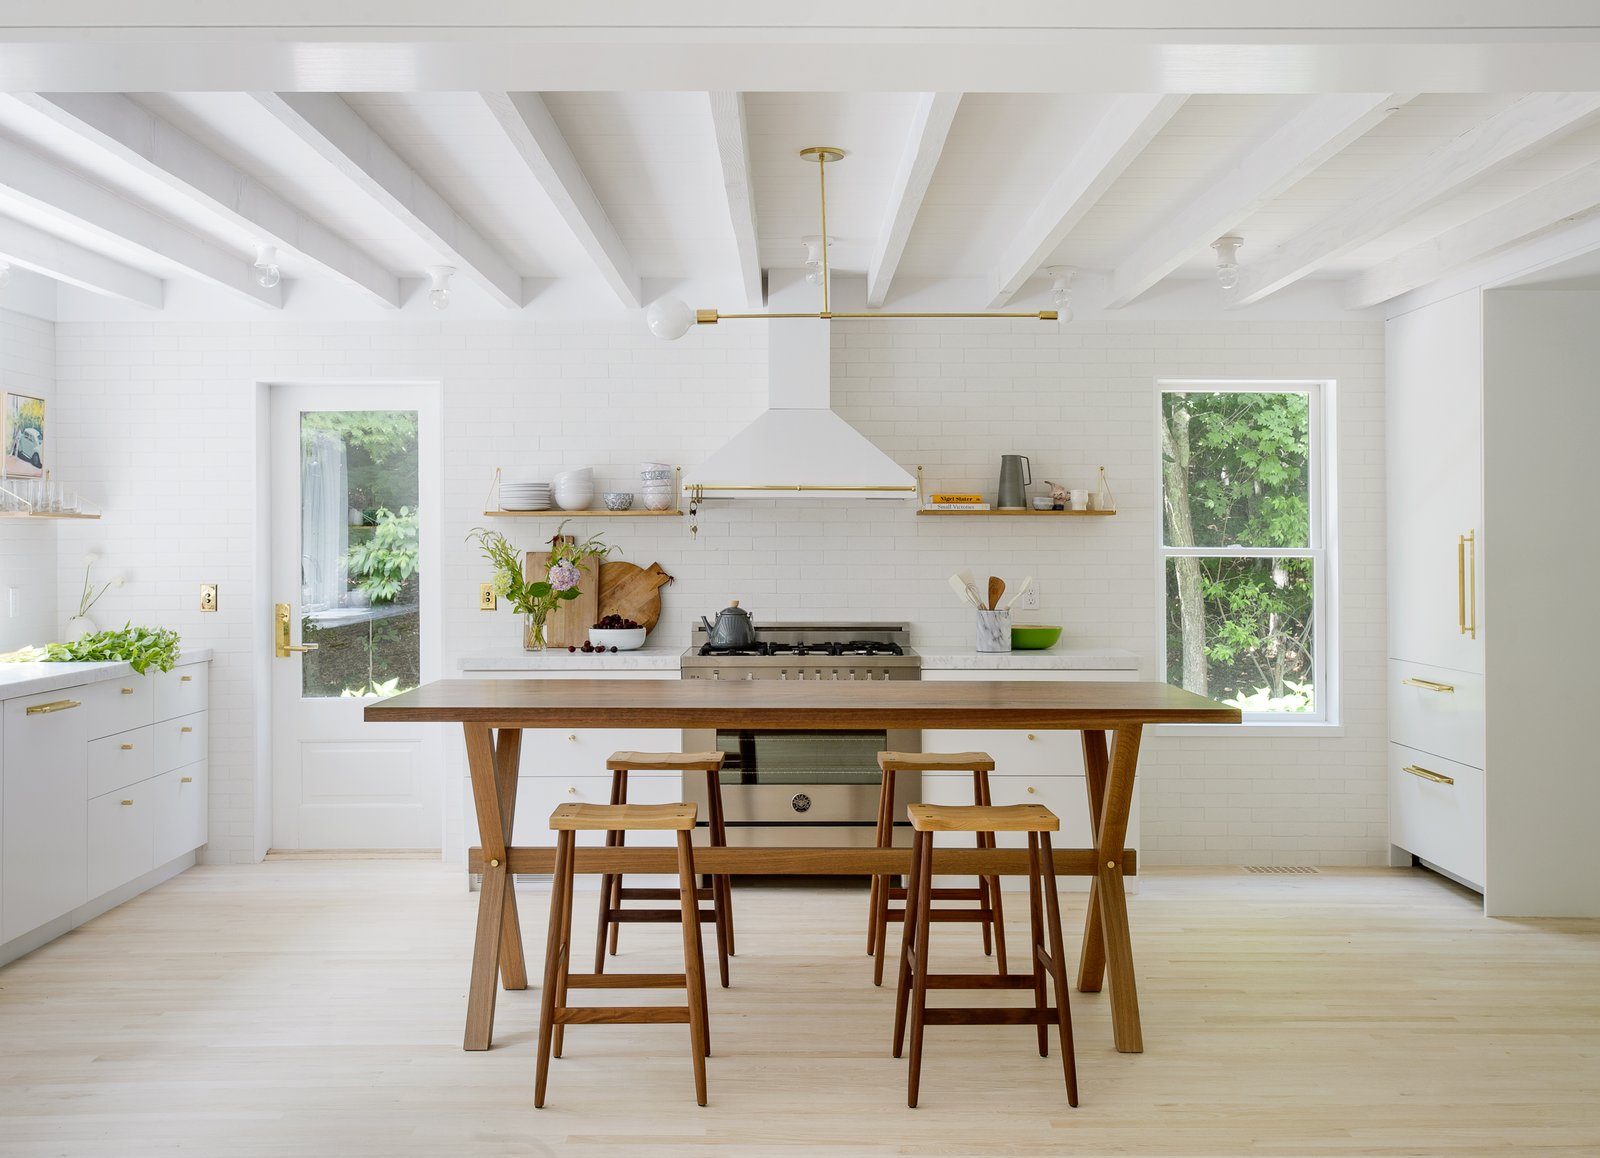 Kitchen, Range Hood, Range, Wall Oven, Marble Counter, Pendant Lighting, Subway Tile Backsplashe, Ceiling Lighting, White Cabinet, and Light Hardwood Floor Taking cues from their style-conscious clients, Portland-based Jessica Helgerson Interior Design transforms an Amagansett home into a light-filled, Scandinavian-inspired getaway. The kitchen expanded to a location where there had been a screened-in porch, increasing its interior footprint.  Best Photos from A Hamptons Beach Retreat Gets a Scandinavian-Style Makeover